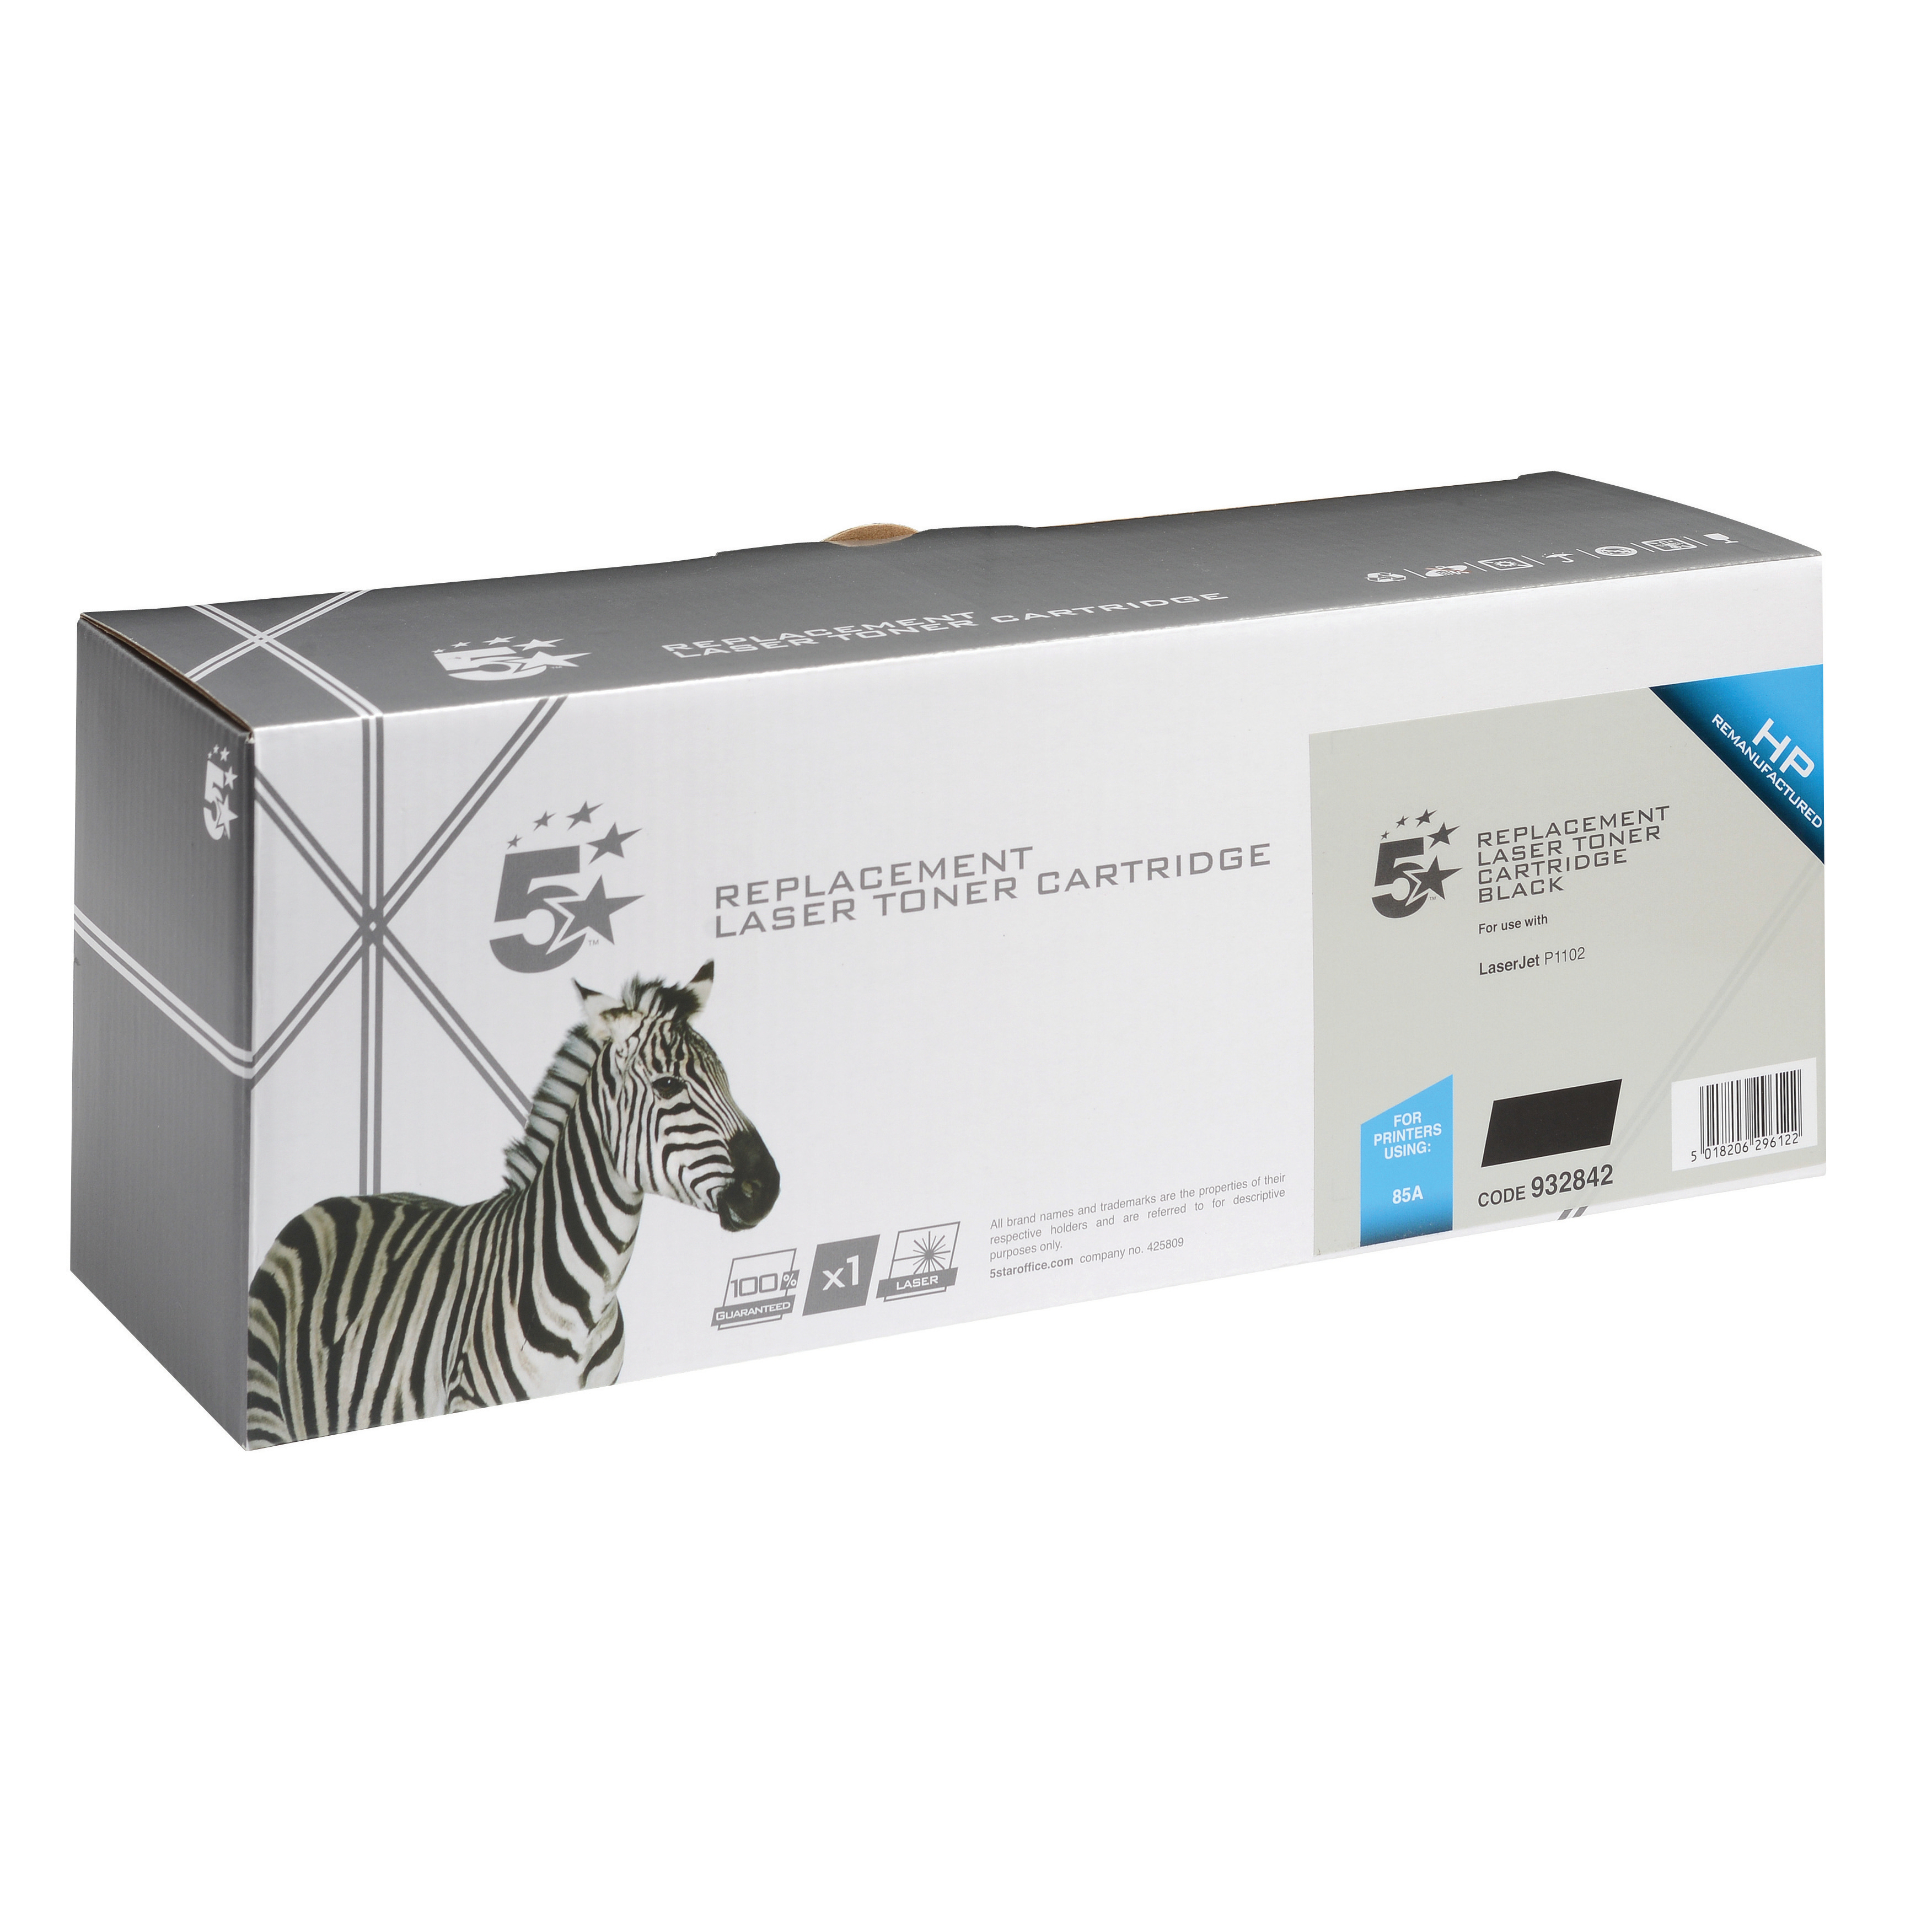 5 Star Office Remanufactured Laser Toner Cartridge Page Life1600pp Black [HP 85A CE285A Alternative]